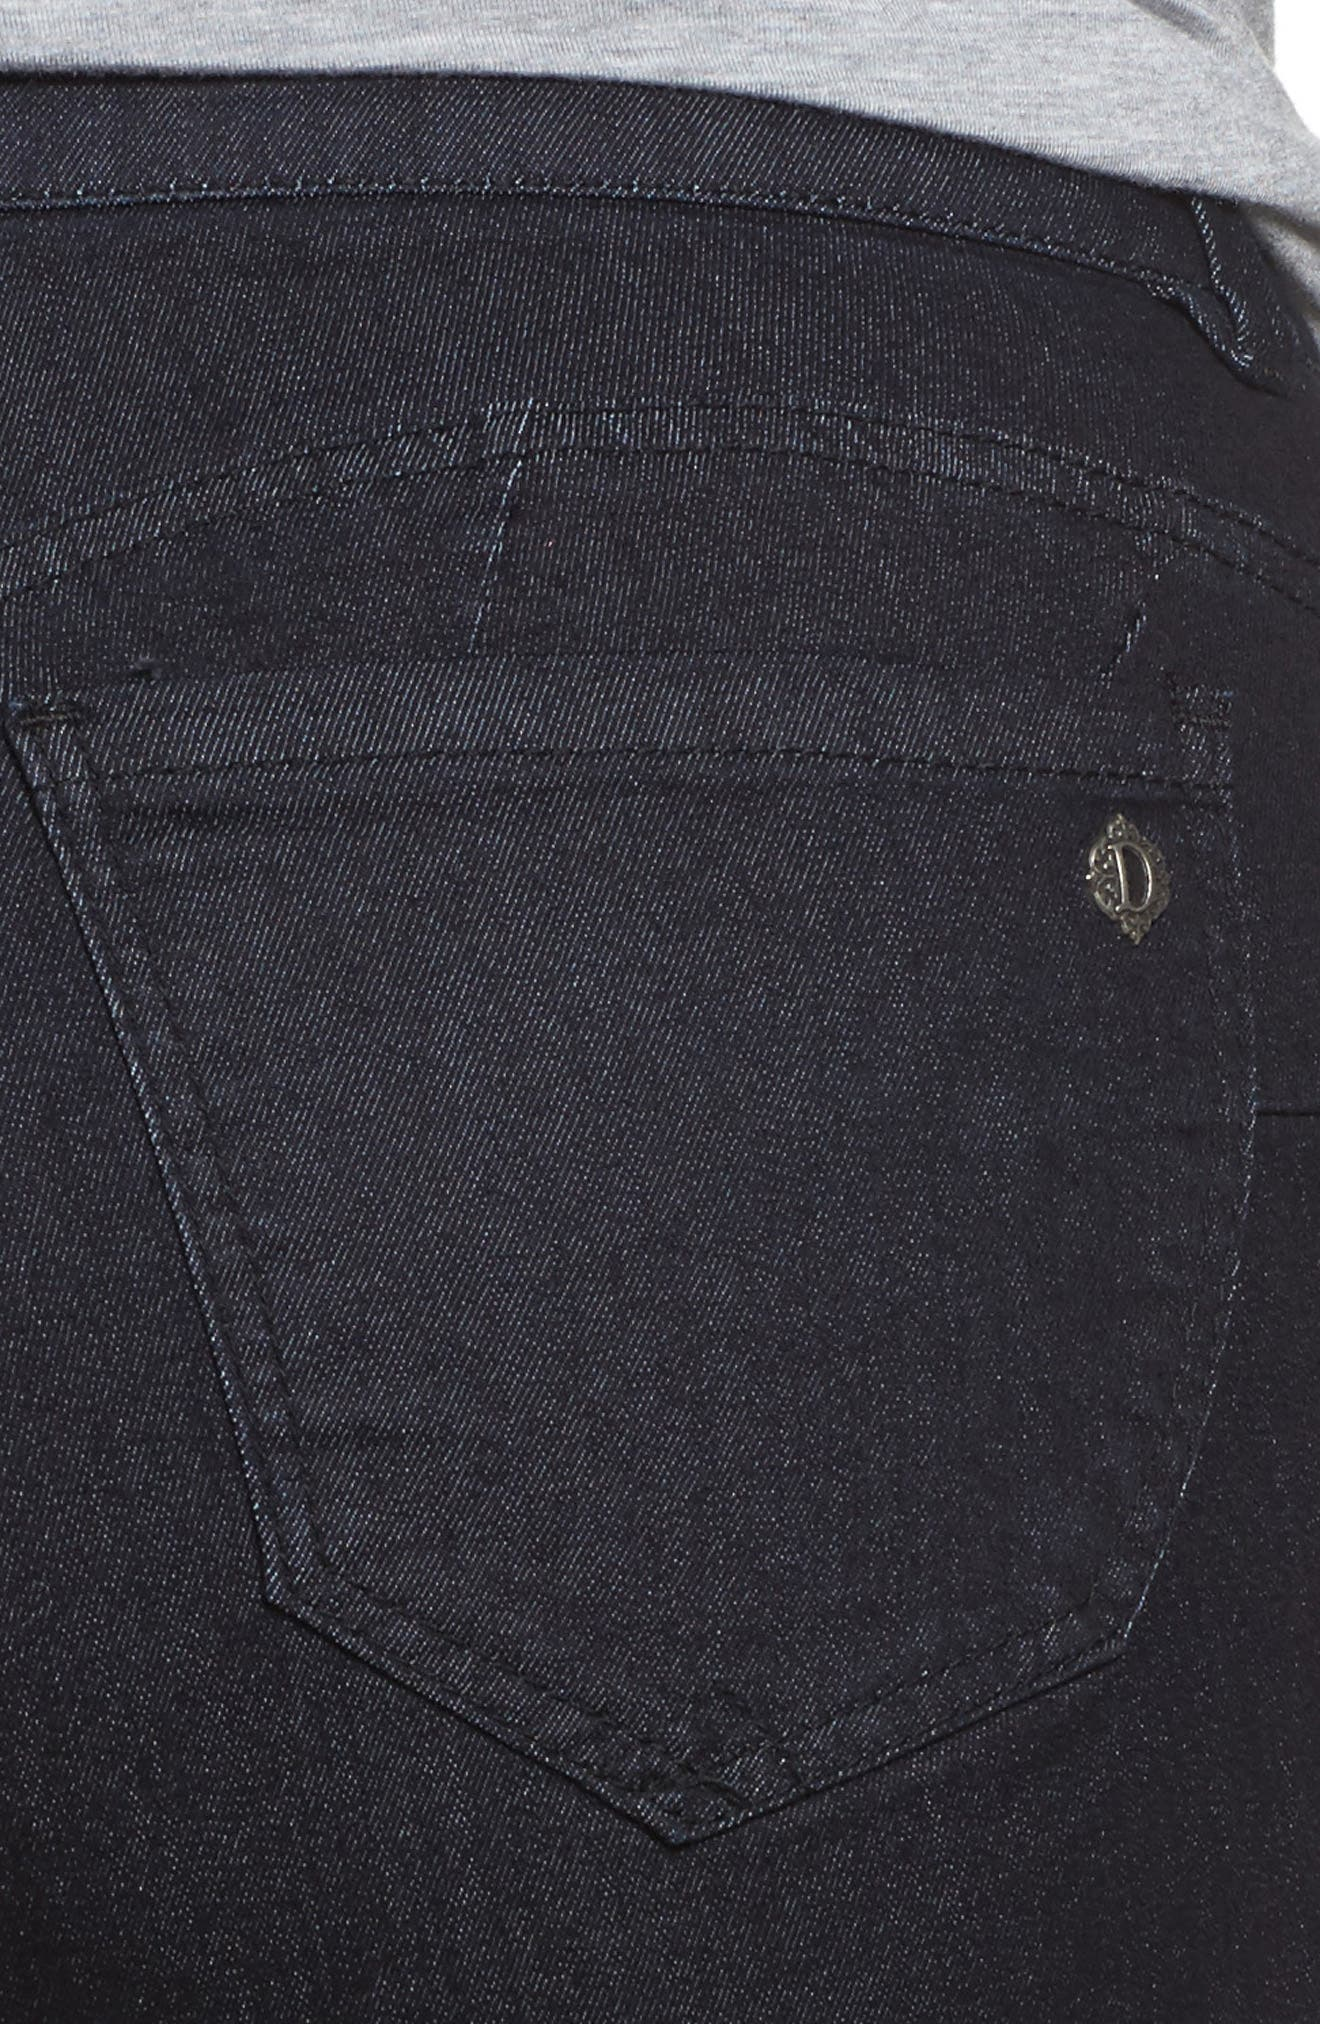 Ab-Solution Stretch Straight Leg Jeans,                             Alternate thumbnail 4, color,                             402